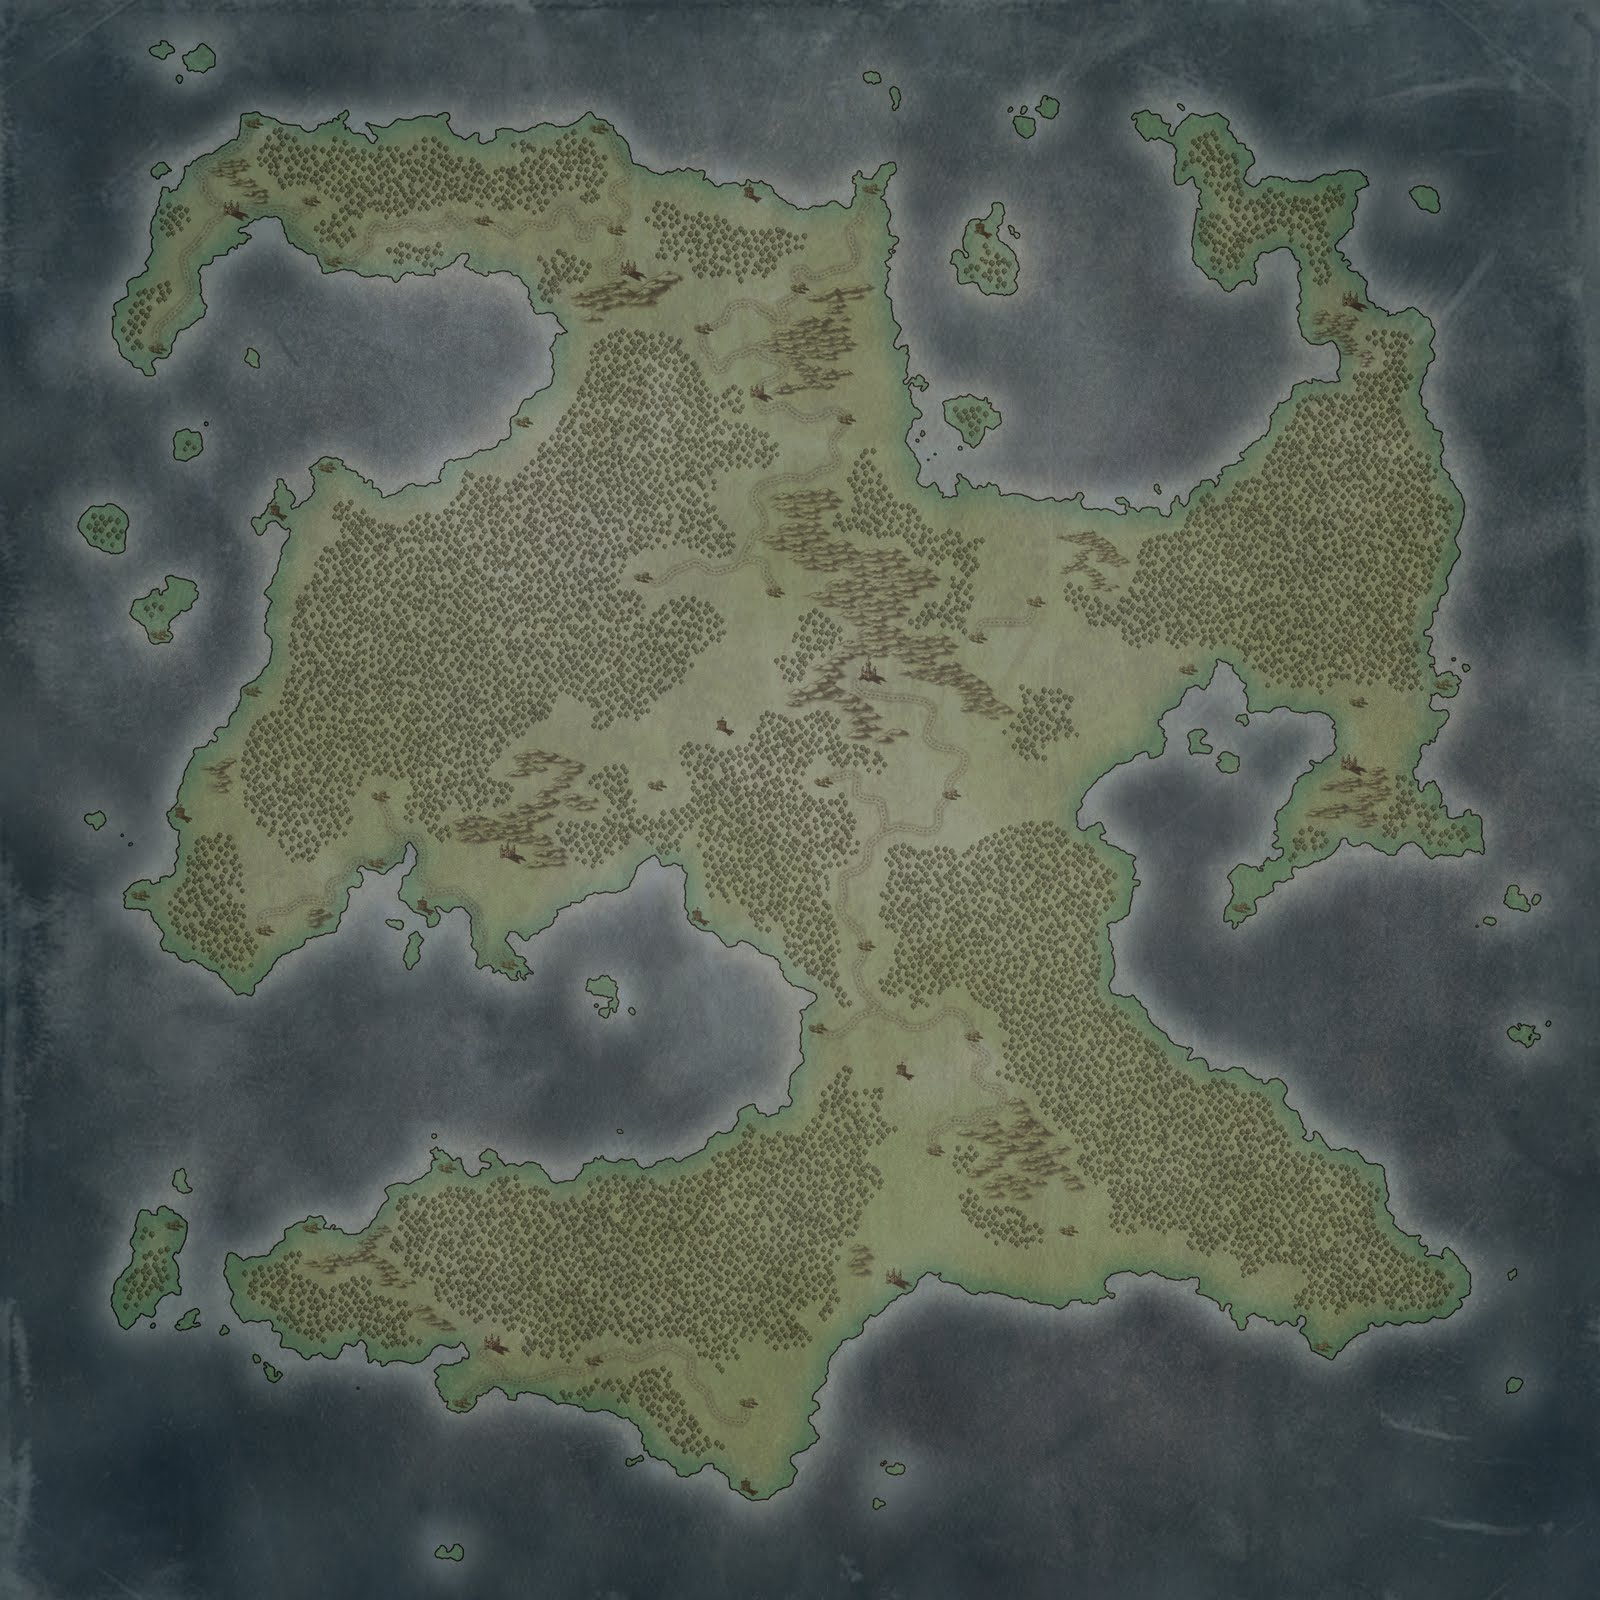 Monday Maps Free Continent Map The Labyrinth - Free continent maps